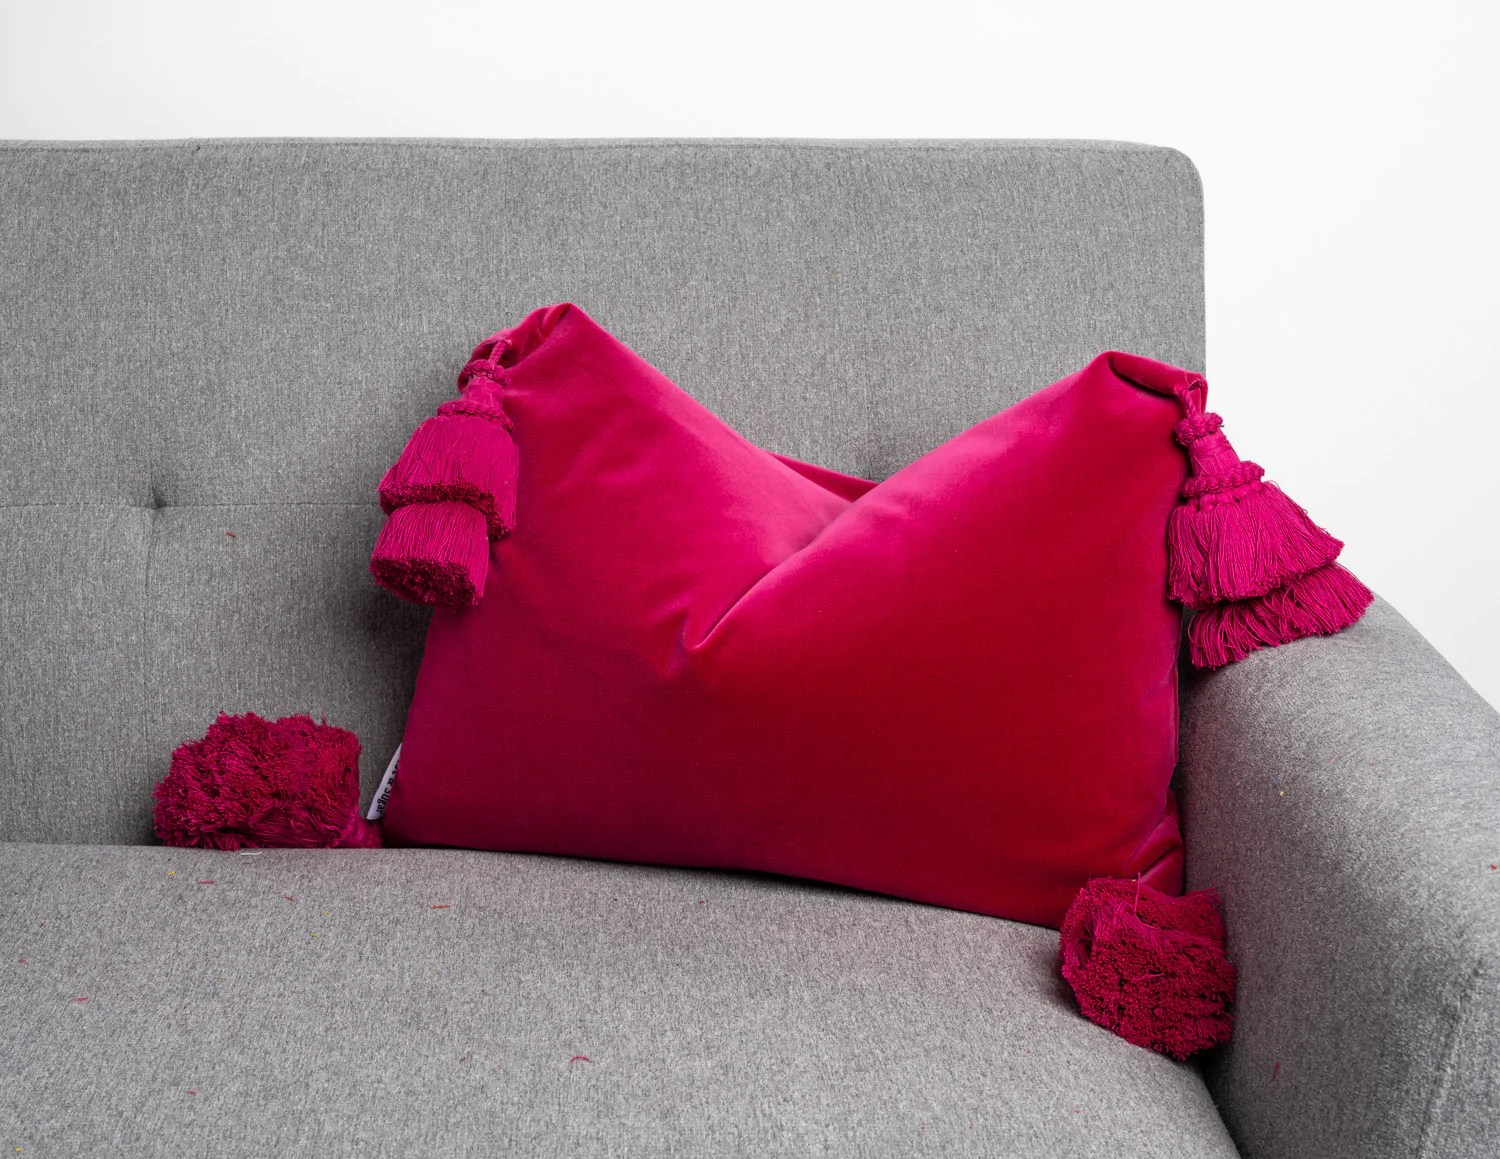 magenta pink pillow cover with handmade tassels